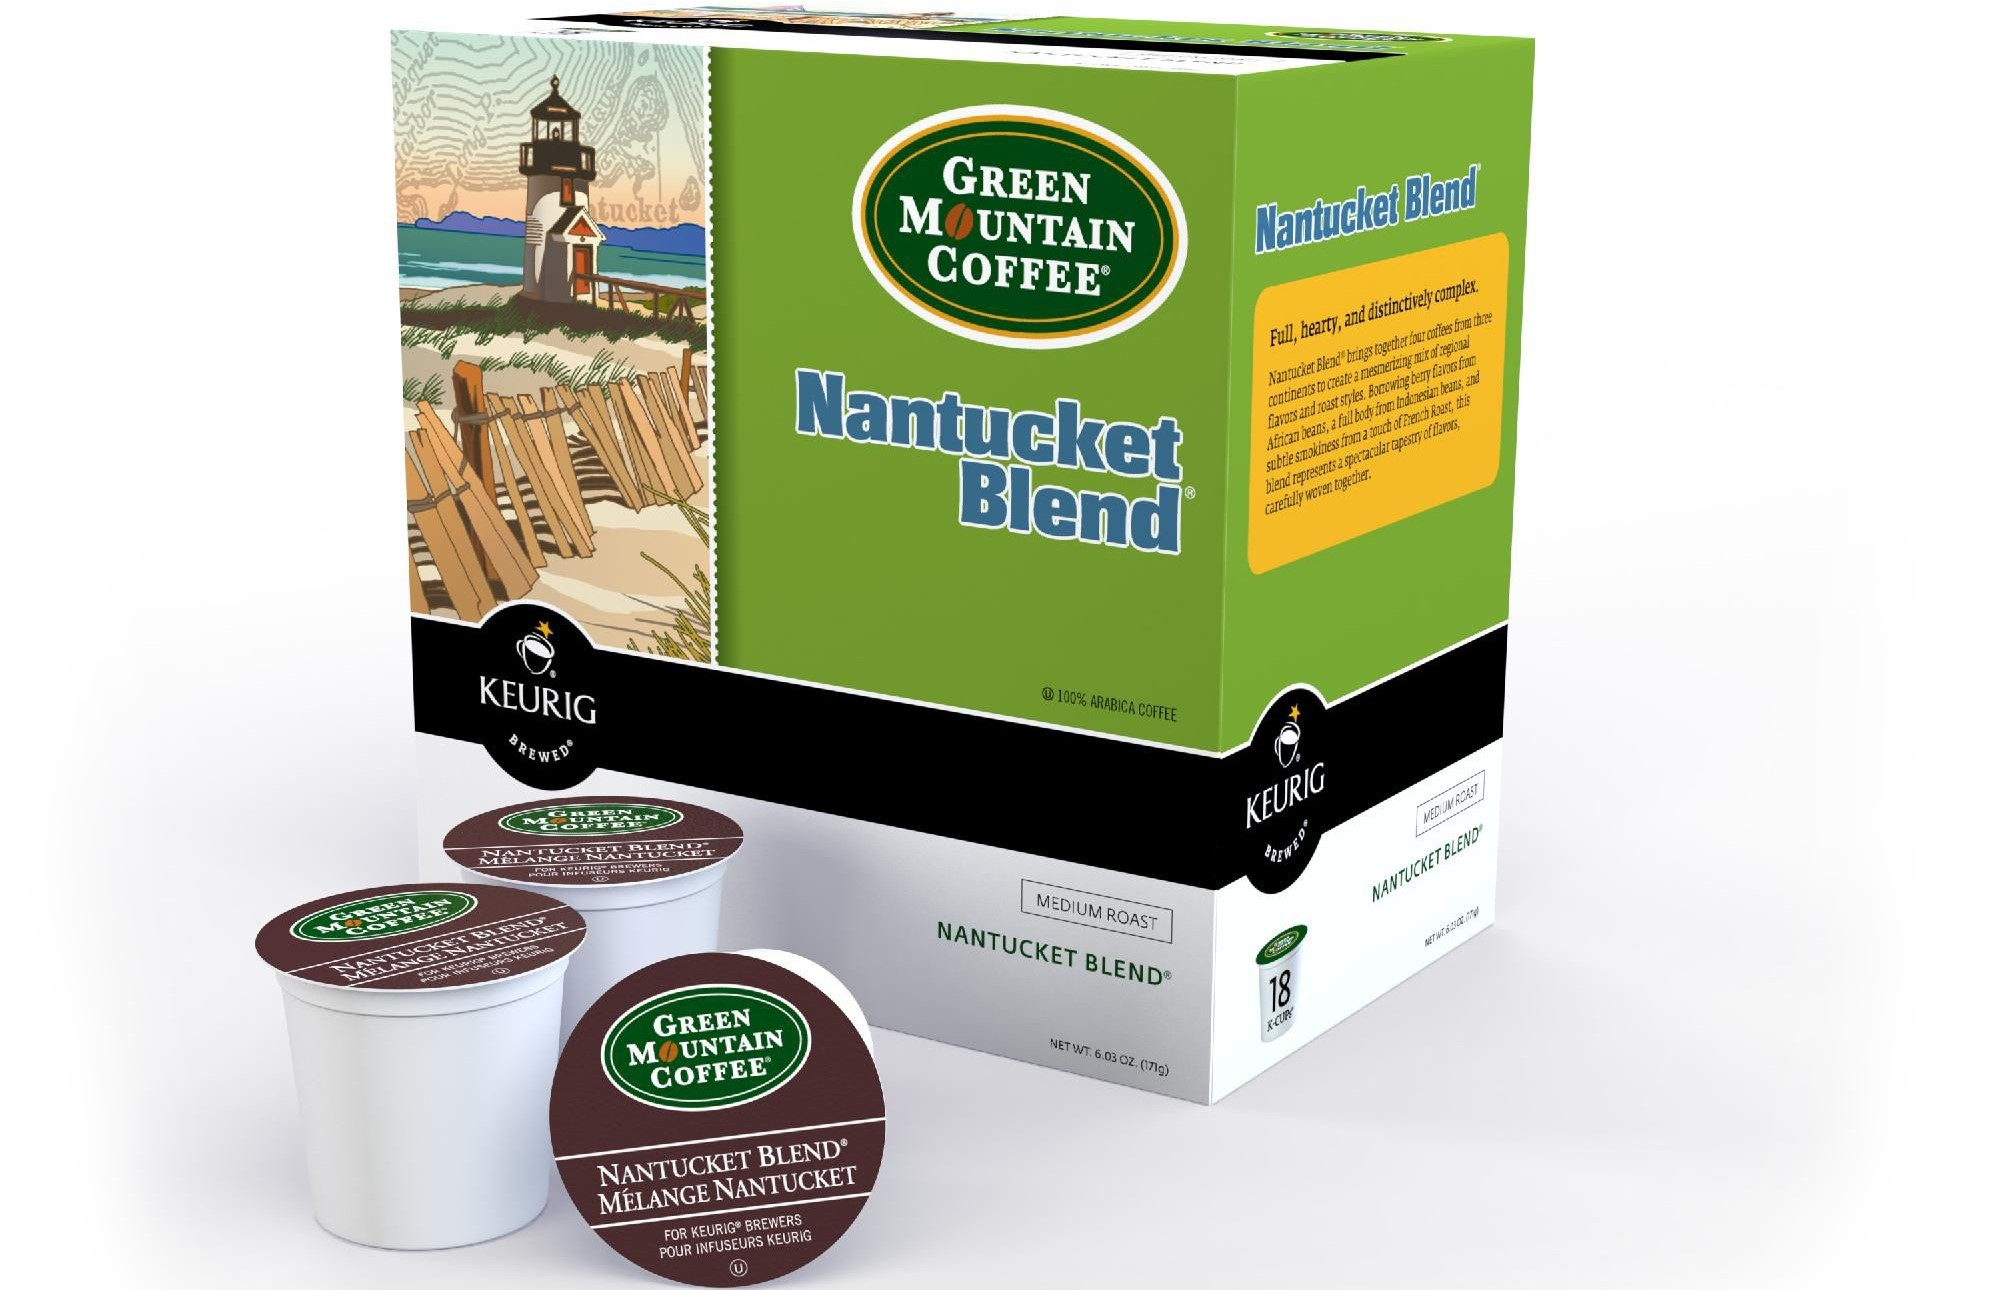 Top K-Cup Coffee Flavors For Your Taste